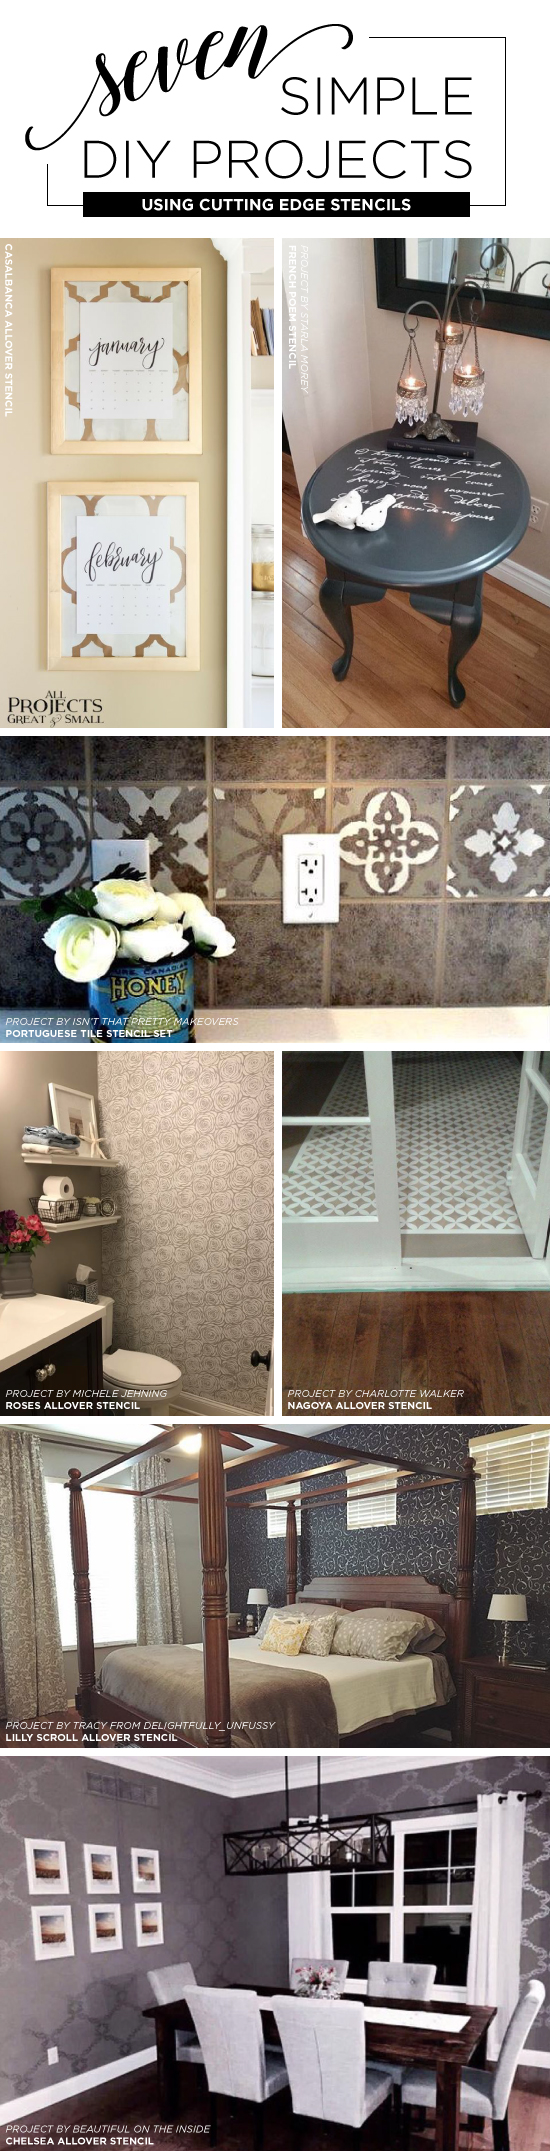 Cutting Edge Stencils Shares Easy And Affordable Diy Decorating Ideas Using Stencil Patterns Http